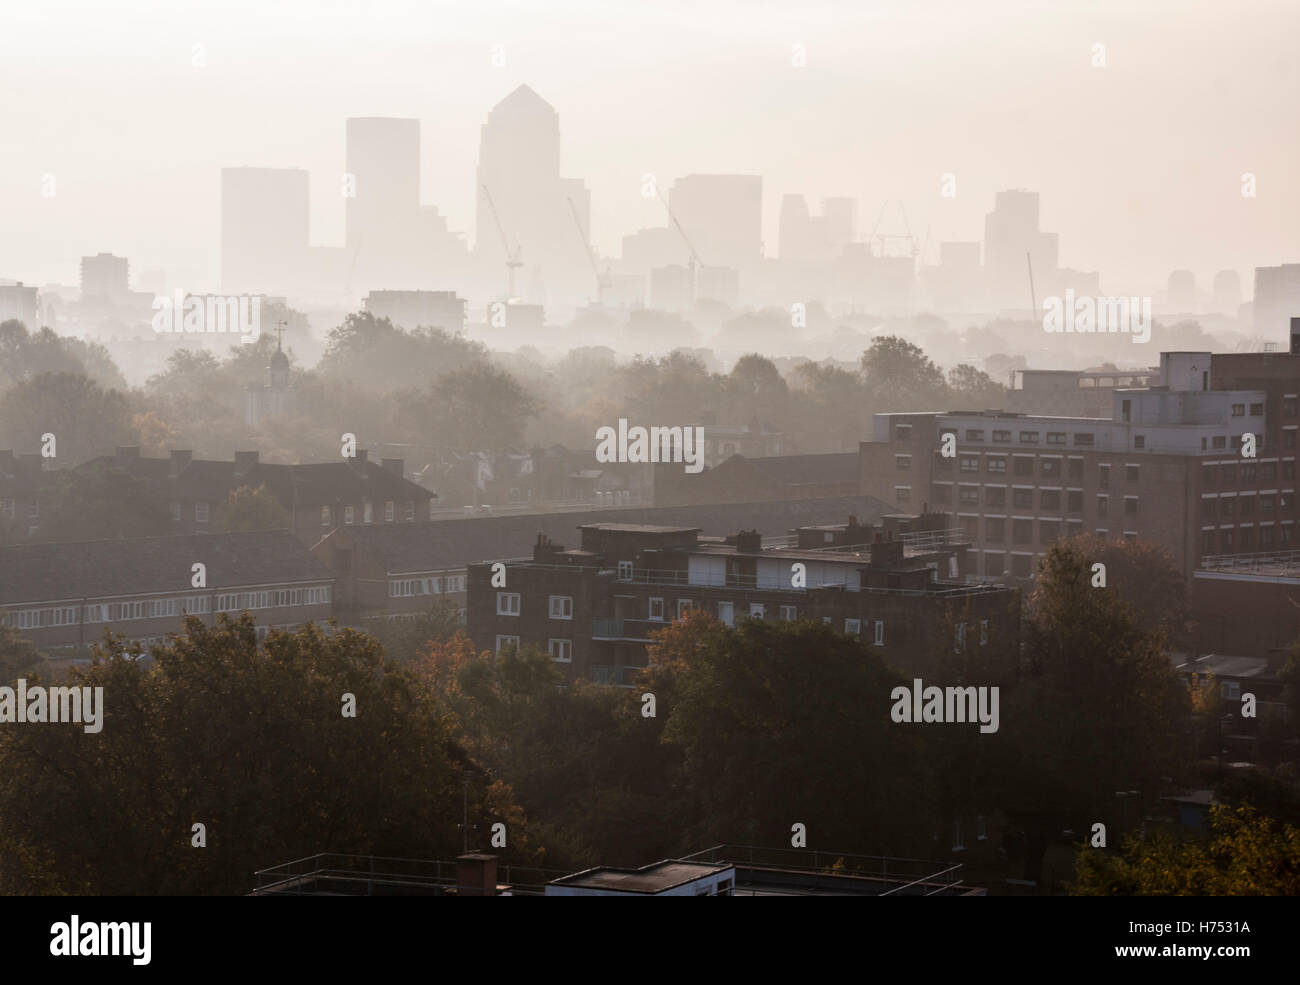 A rooftop view of the foggy London city skyline around Canary Wharf - Stock Image